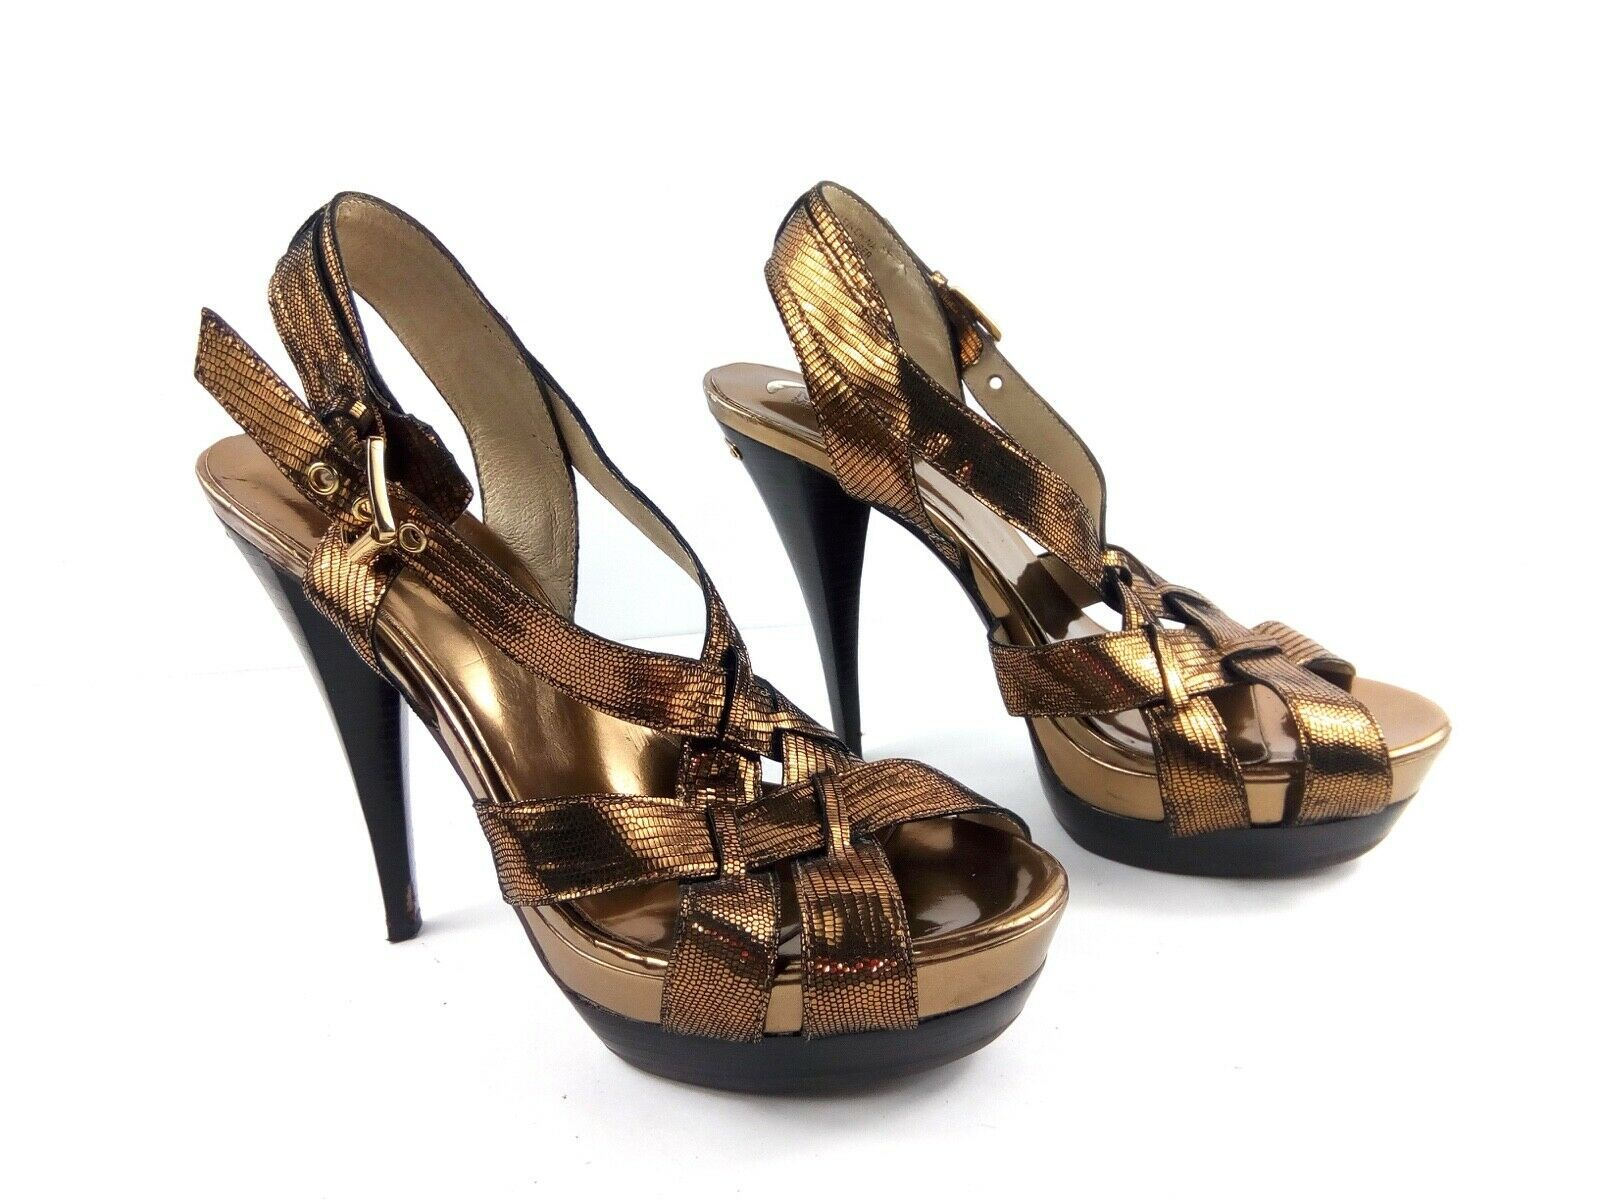 Primary image for Michael Kors Women's Sandals Leather Gold/Bronze Platform Heels Shoes Sz 7.5